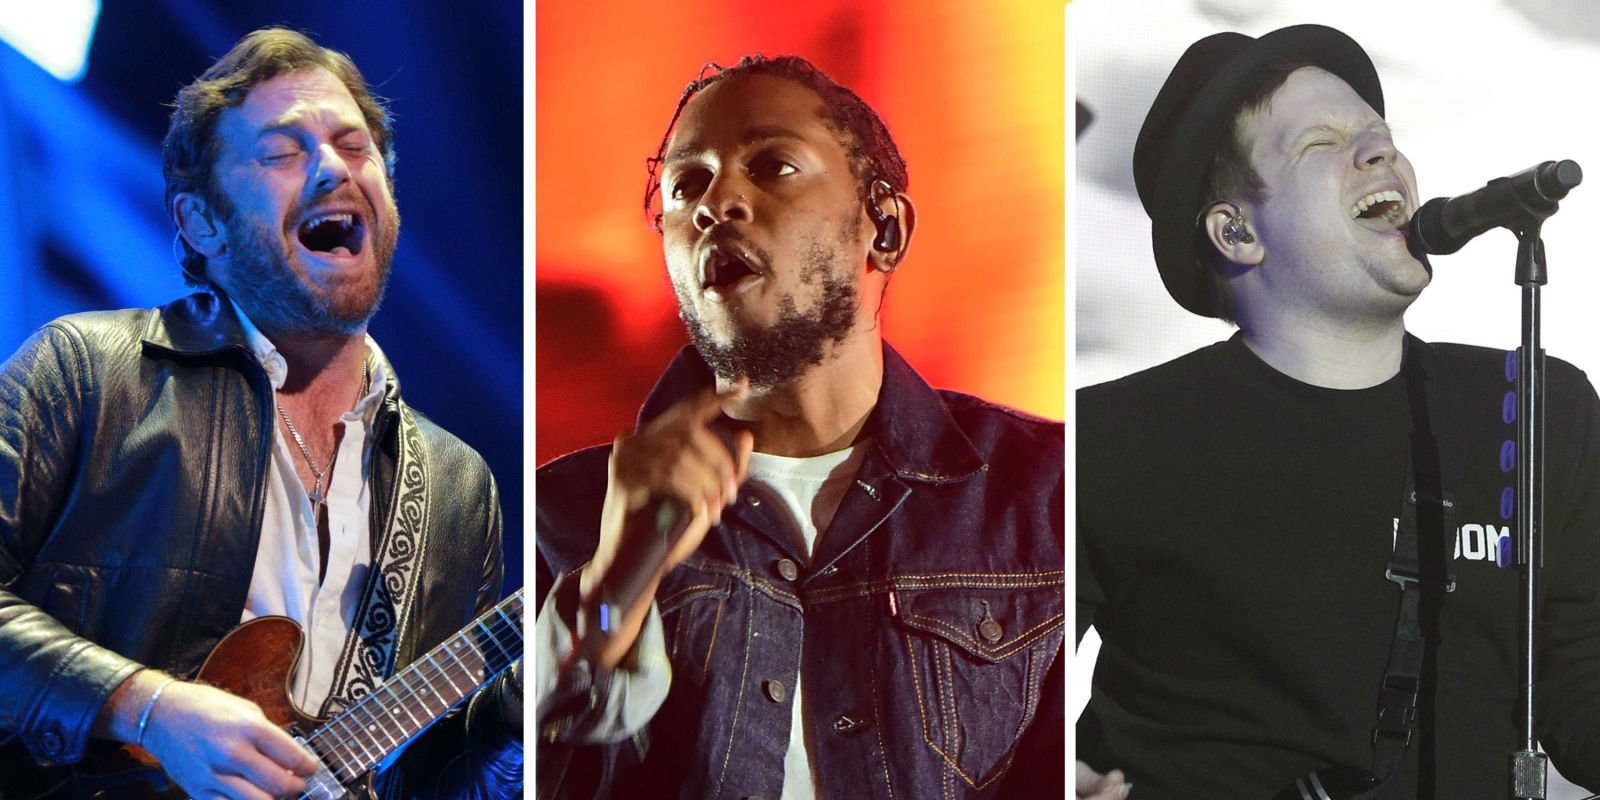 Kings of Leon, Kendrick Lamar and Fall Out Boy announced for Reading and Leeds Festival 2018